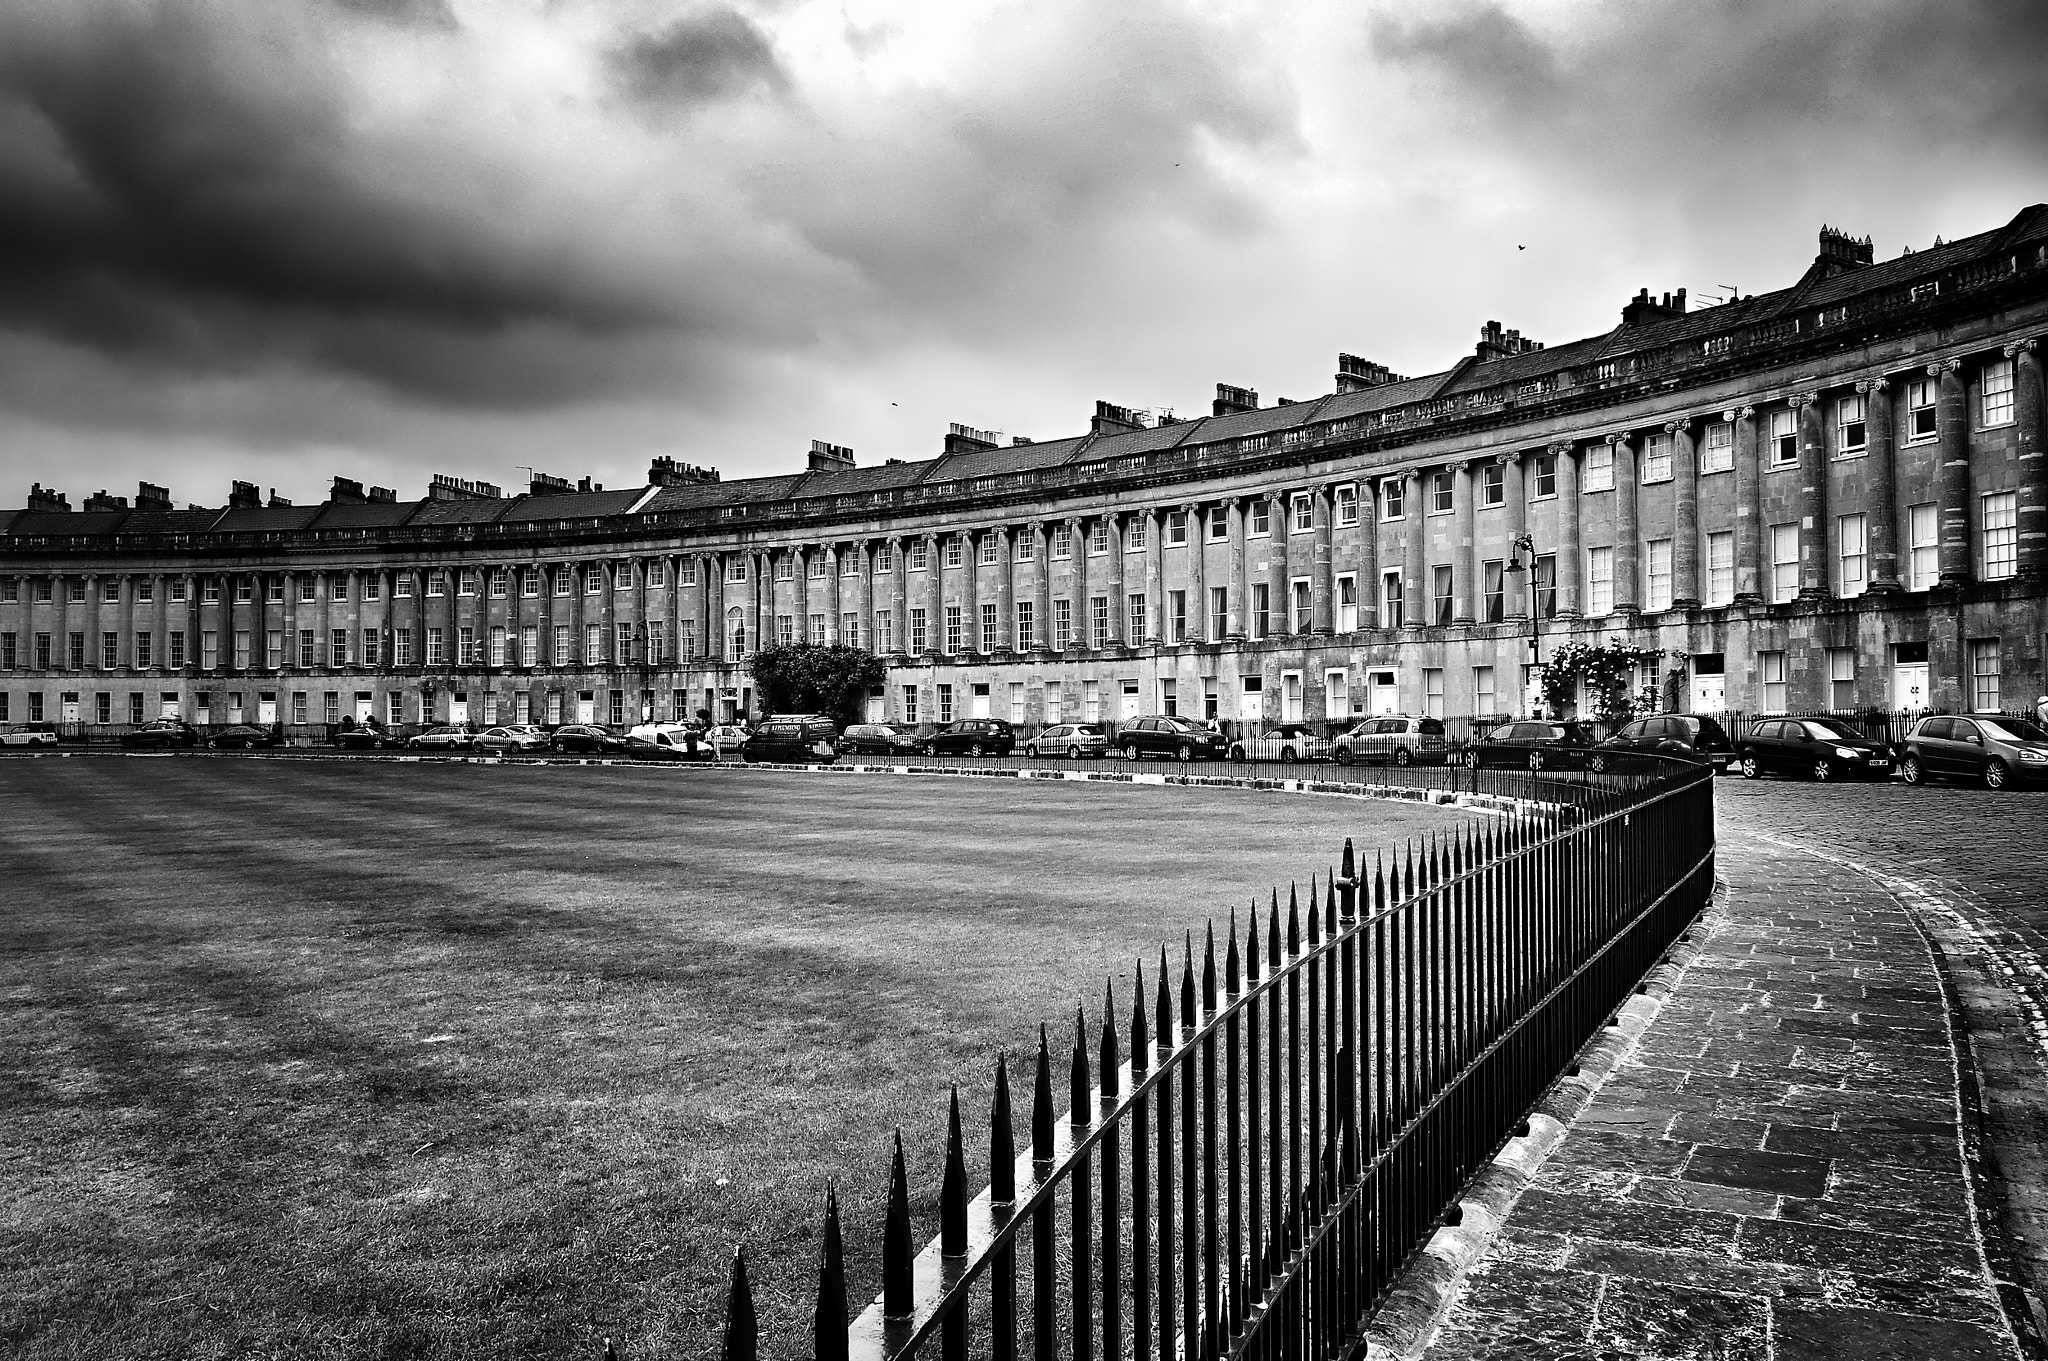 Photograph Royal Crescent, Bath by Tobias King on 500px